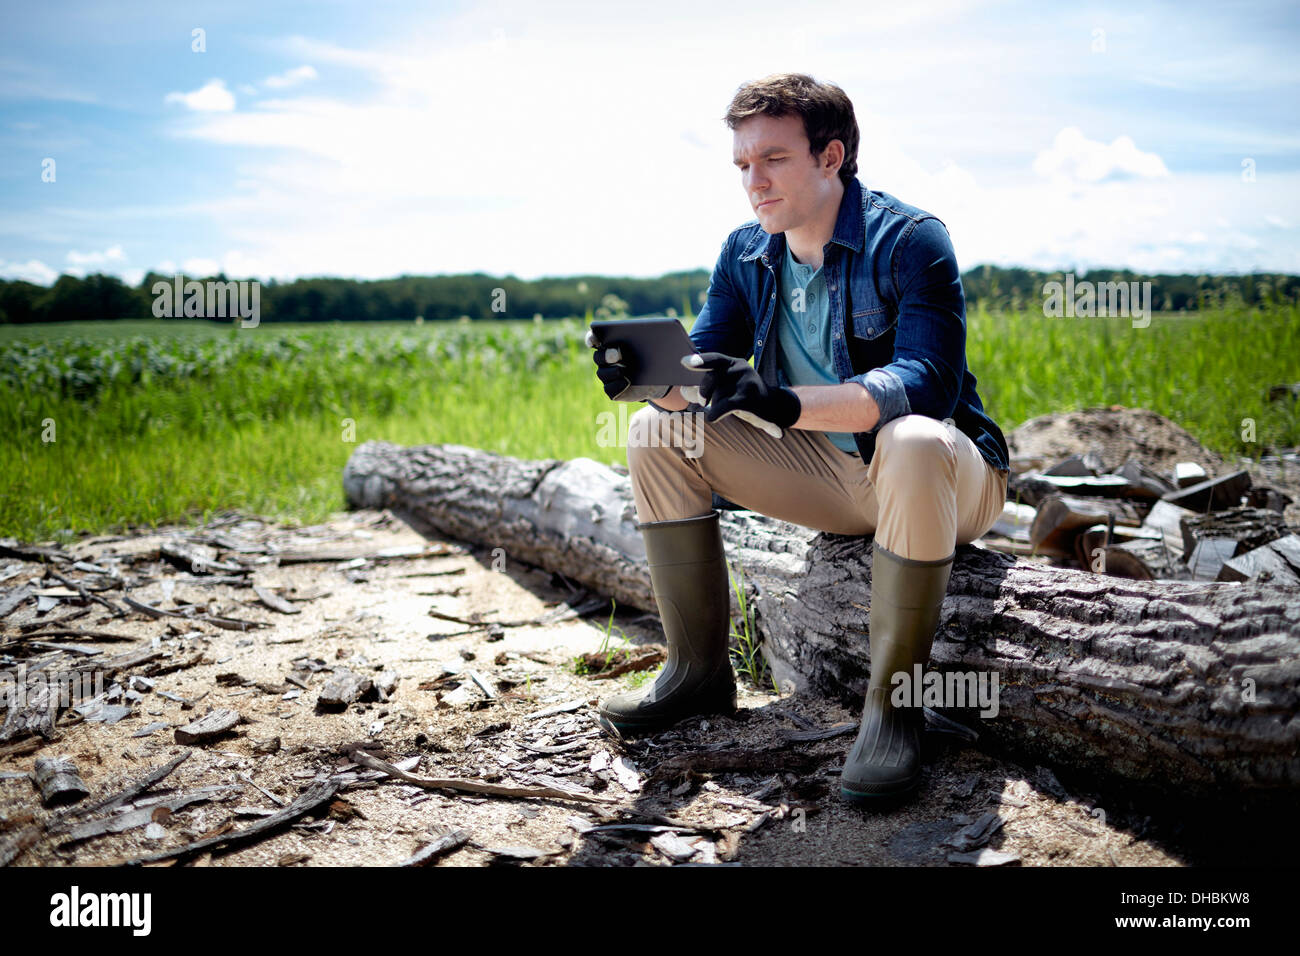 A farmer sitting using a tablet computer outdoors in a field of crops - Stock Image